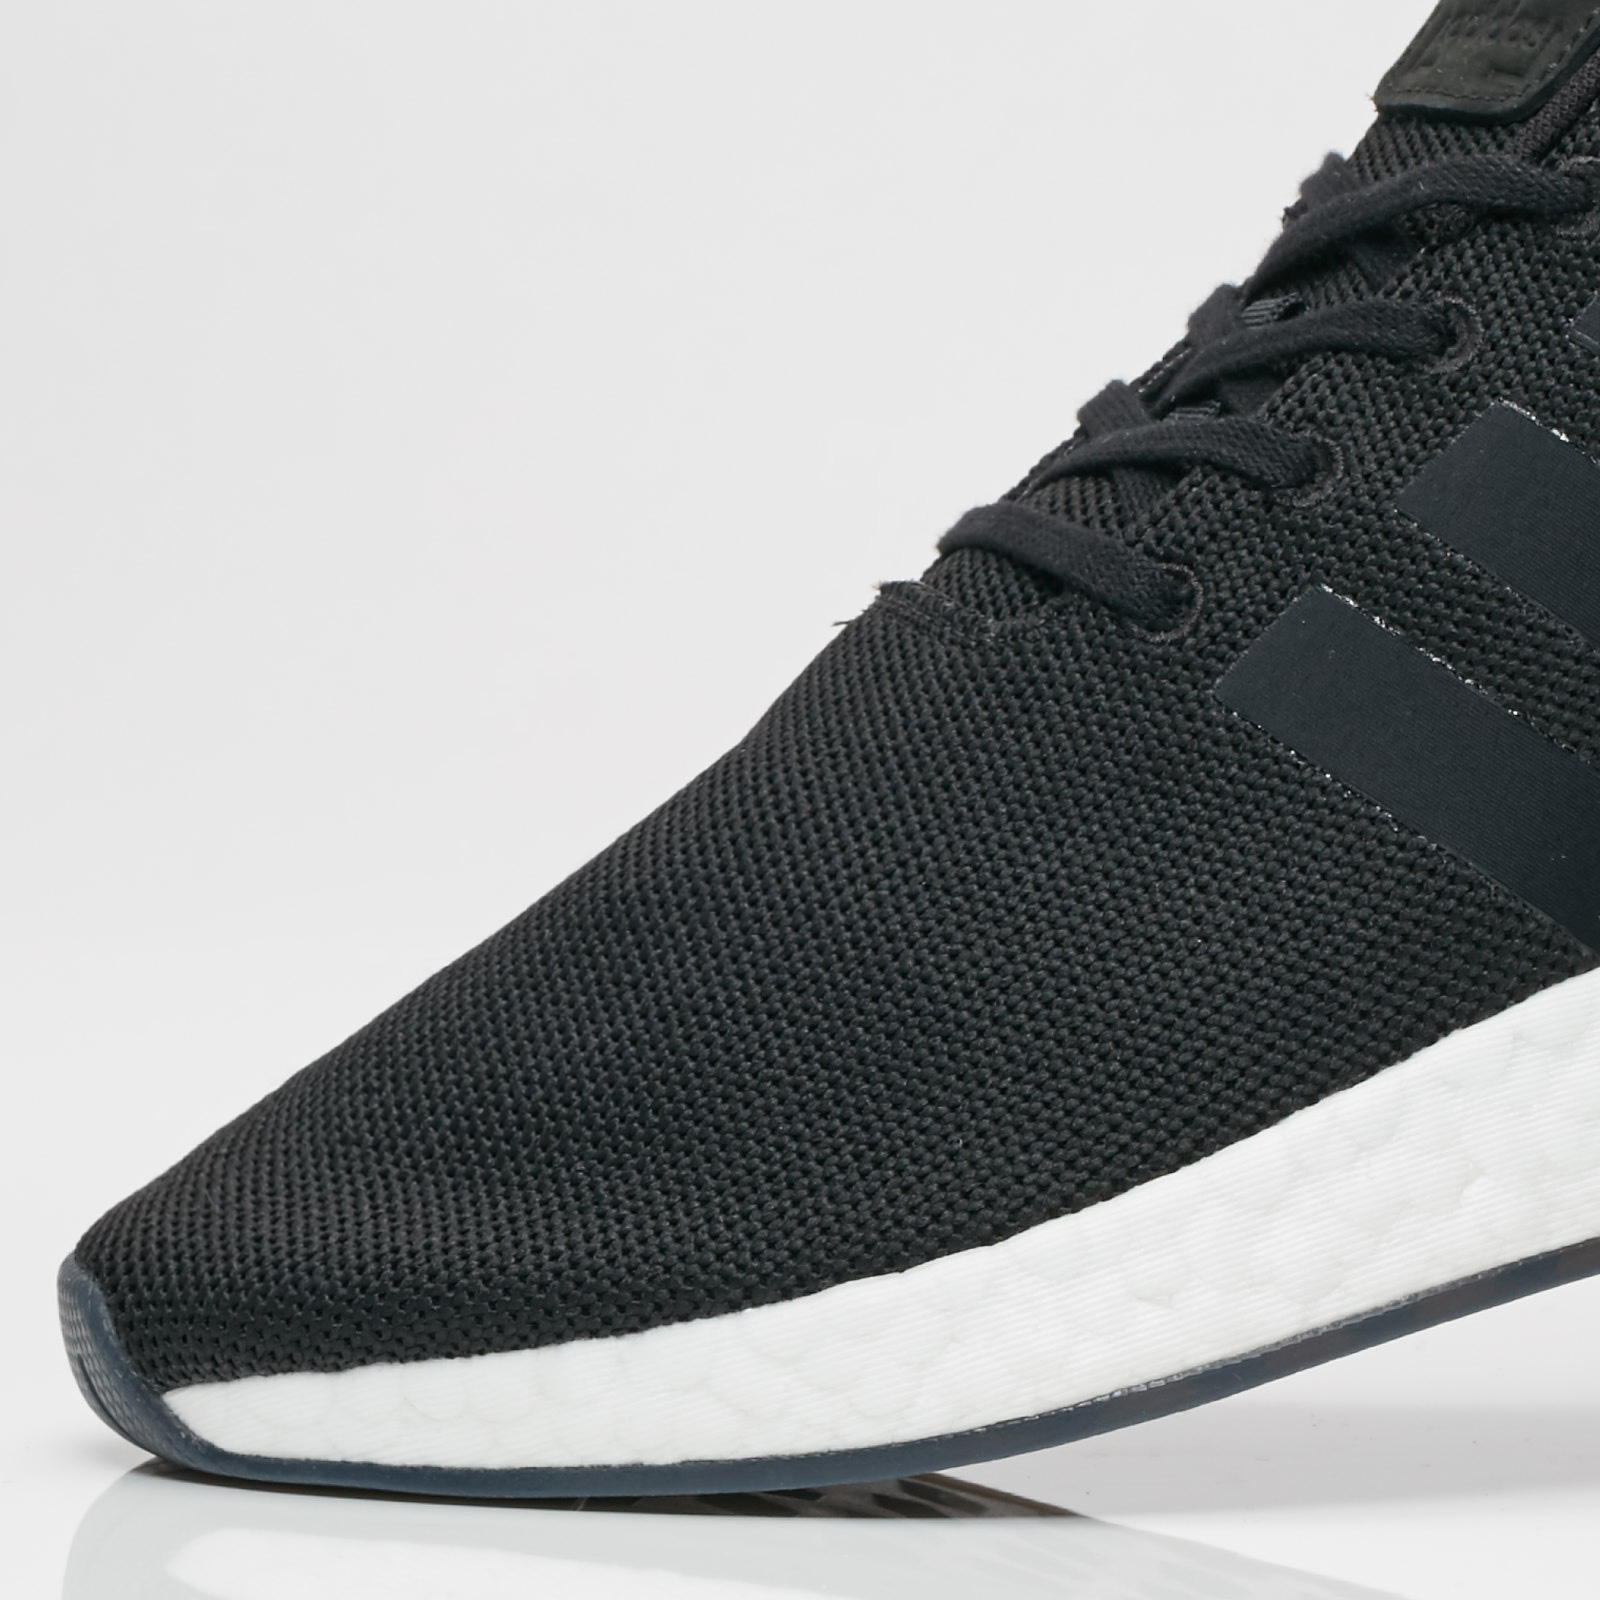 outlet store a91d2 80201 adidas NMD R2 - Cq2402 - Sneakersnstuff | sneakers ...